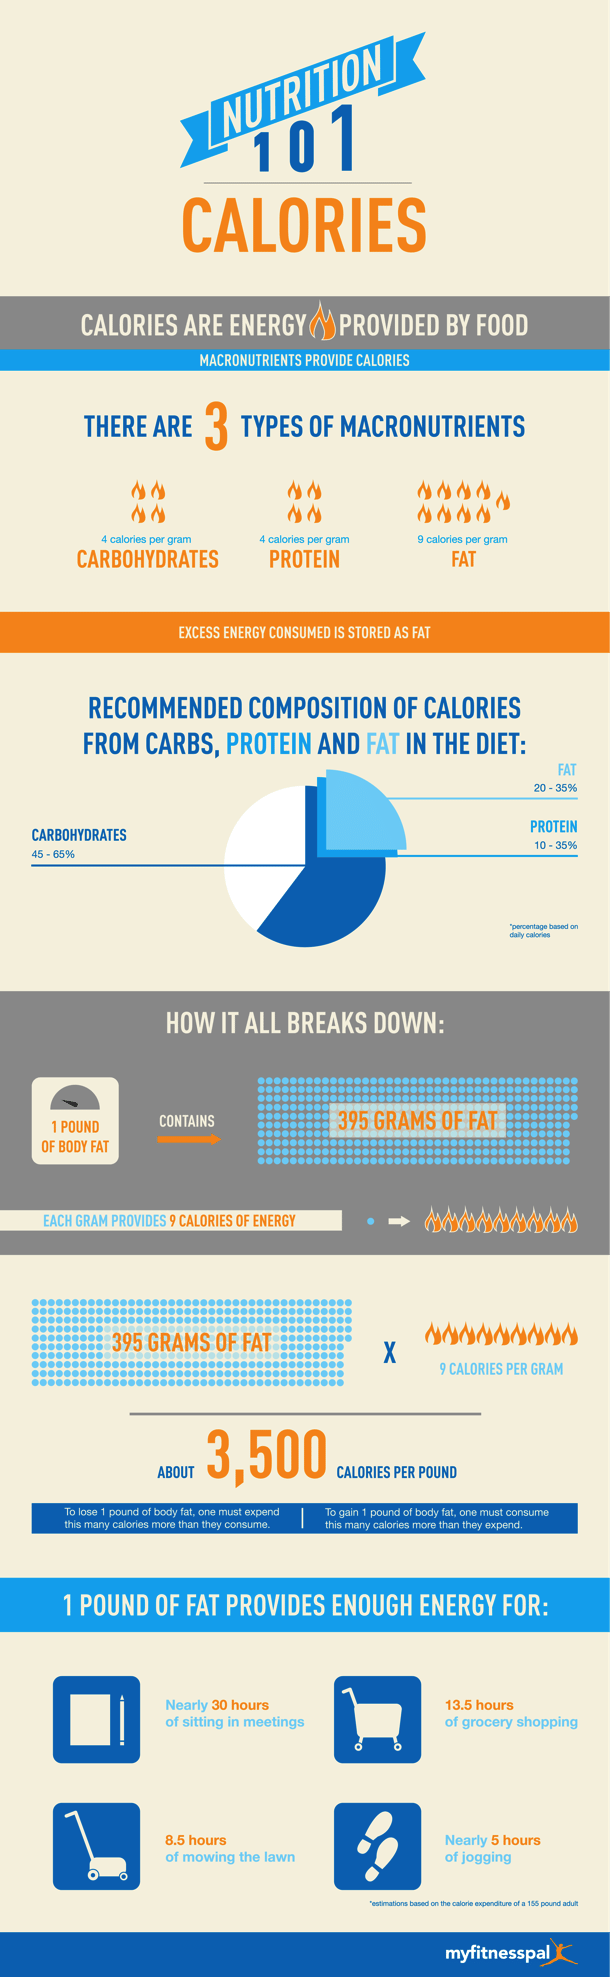 Calories-MyFitnessPal-Nutrition-101-Infographic2